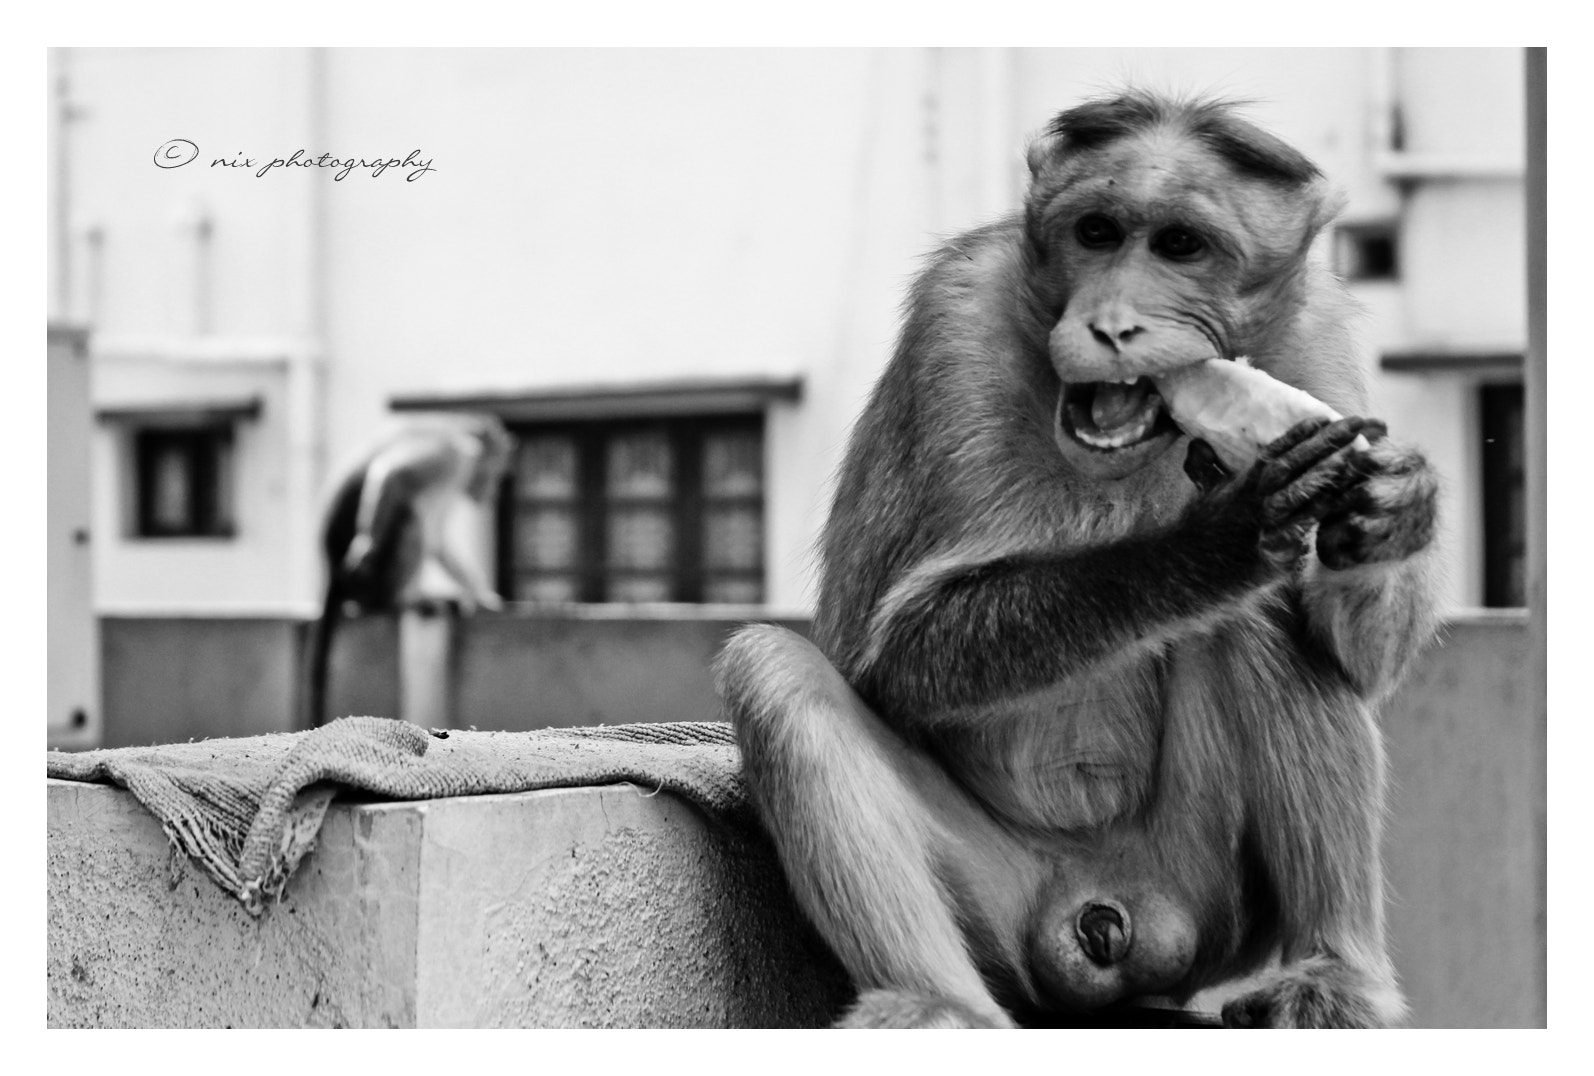 Photograph The Naked Ape by Nithesh Kanth on 500px